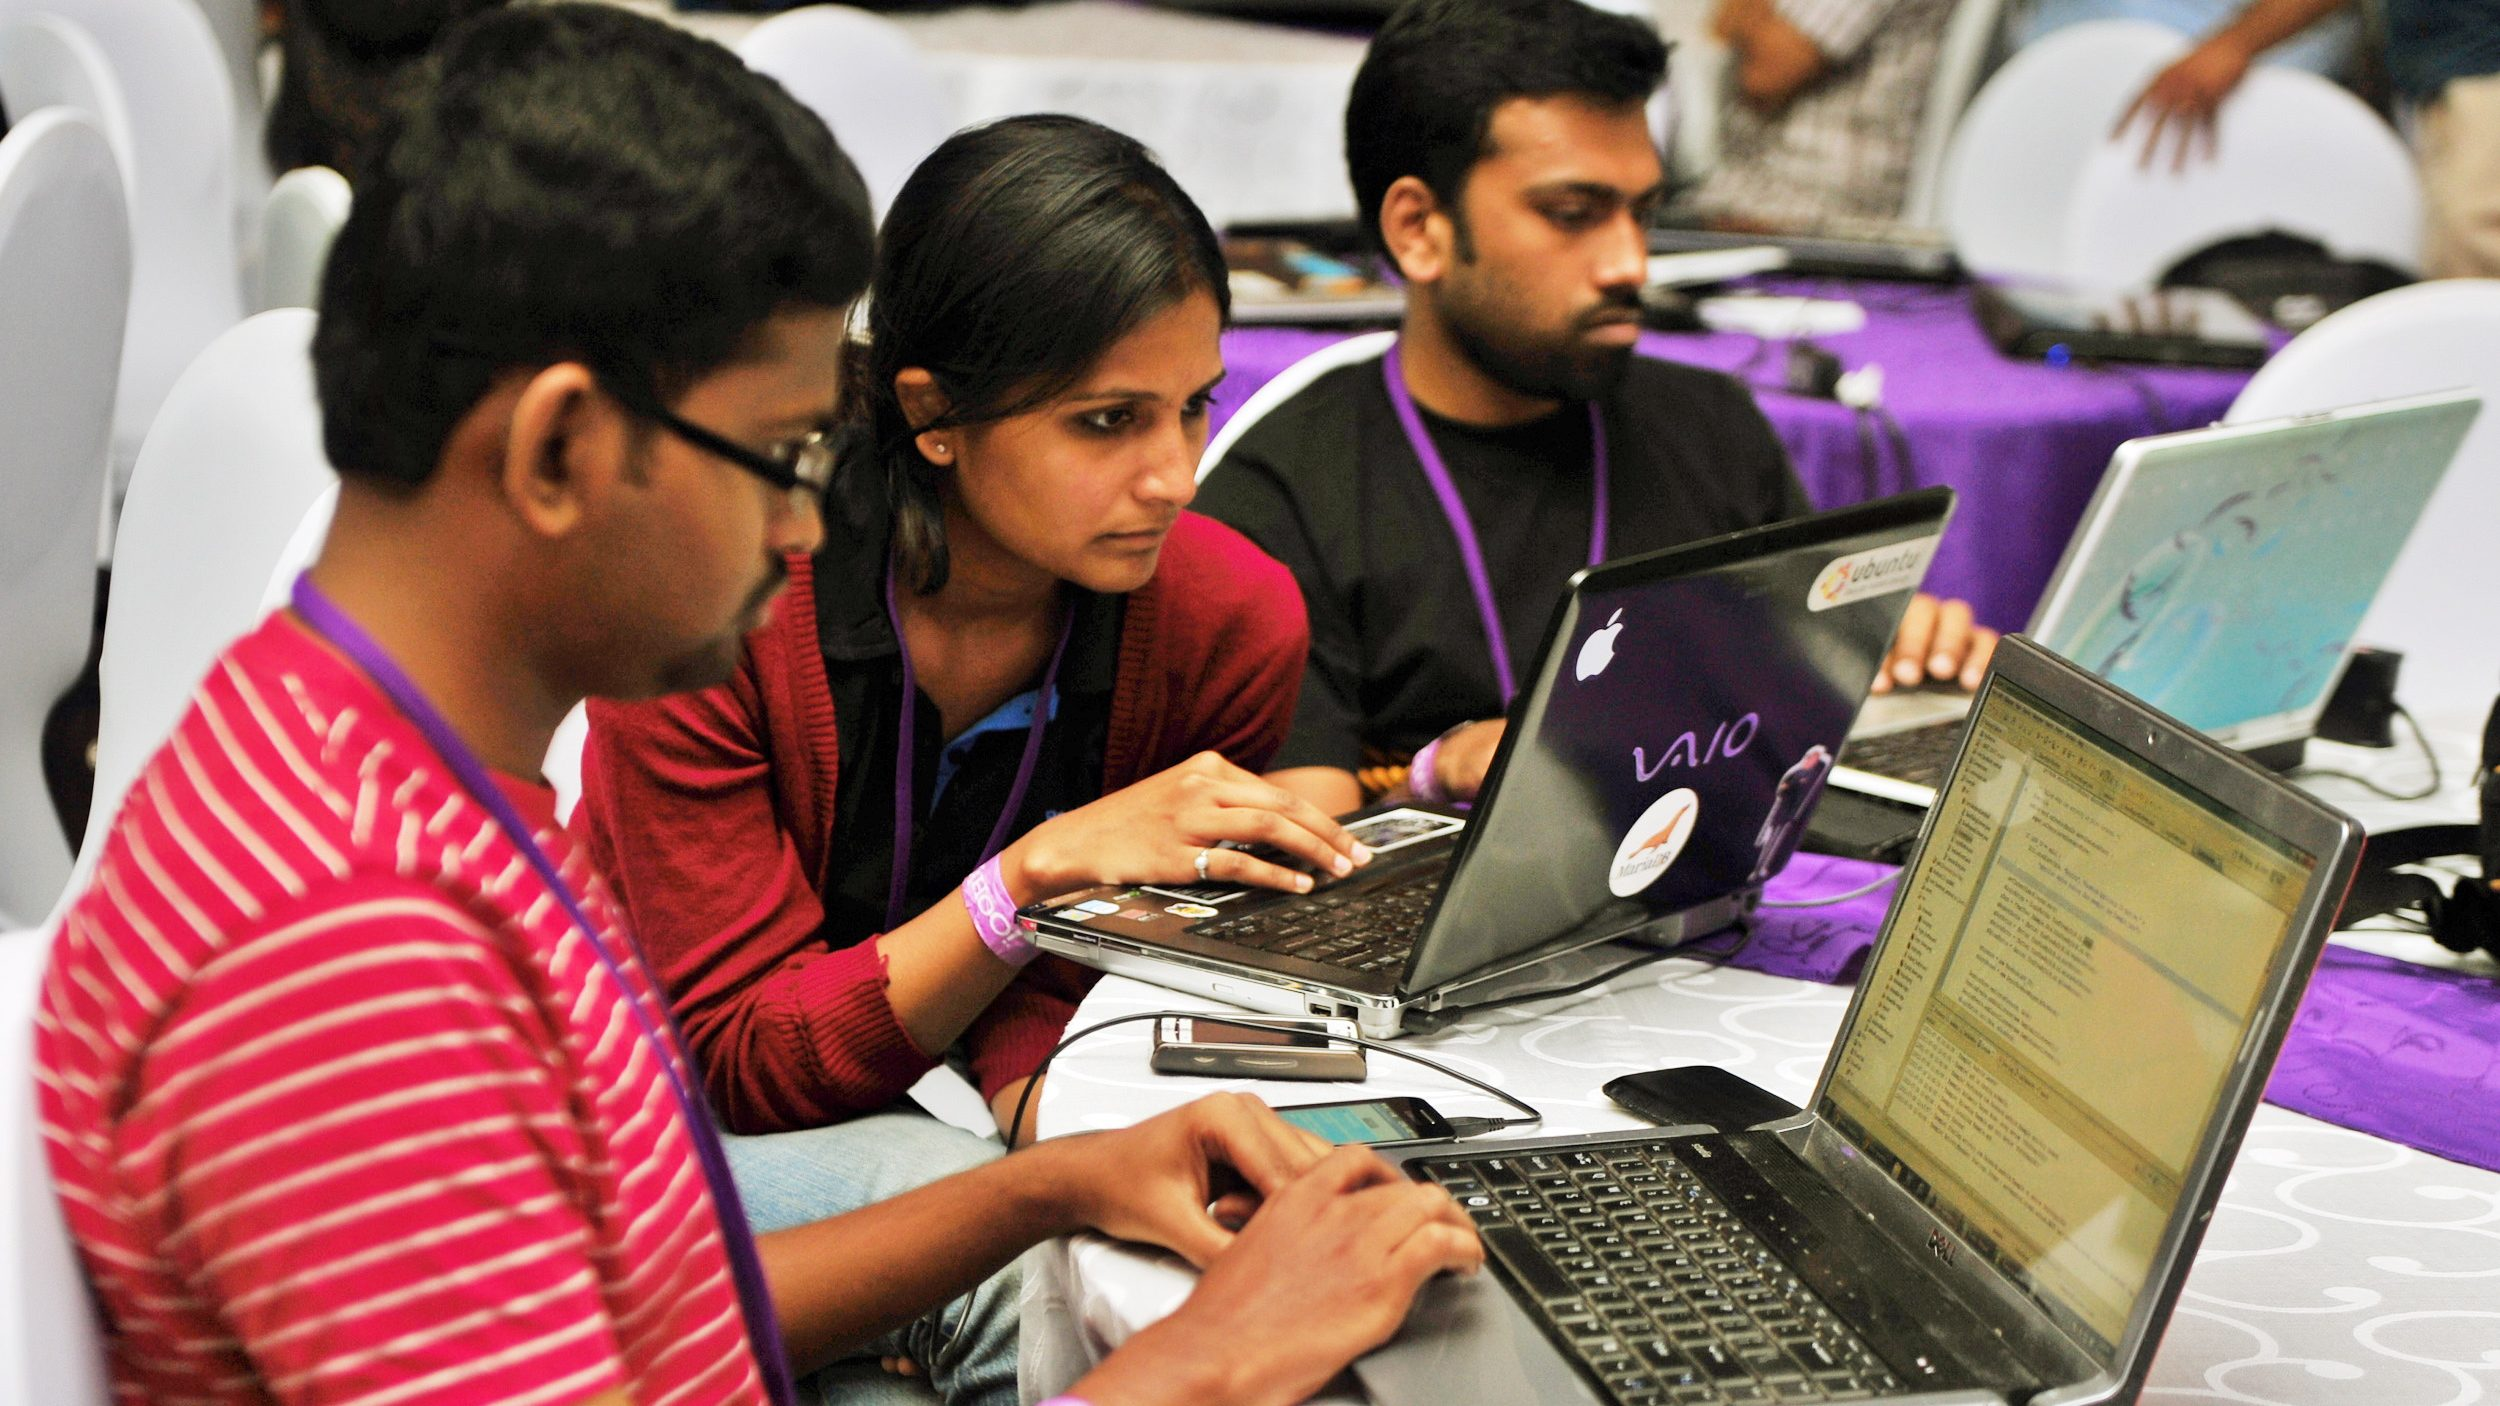 epa02848473 Software professionals take part in the 24 hours ?Hackathon? during the Open Hack Day, in southern Indian city of Bangalore, 30 July 2011. Over 800 developers from across India took part in the Yahoo Research & Development 4th Open Hack in India and 15th such global event, from 30 July to 31 July in Bangalore.  EPA/JAGADEESH NV